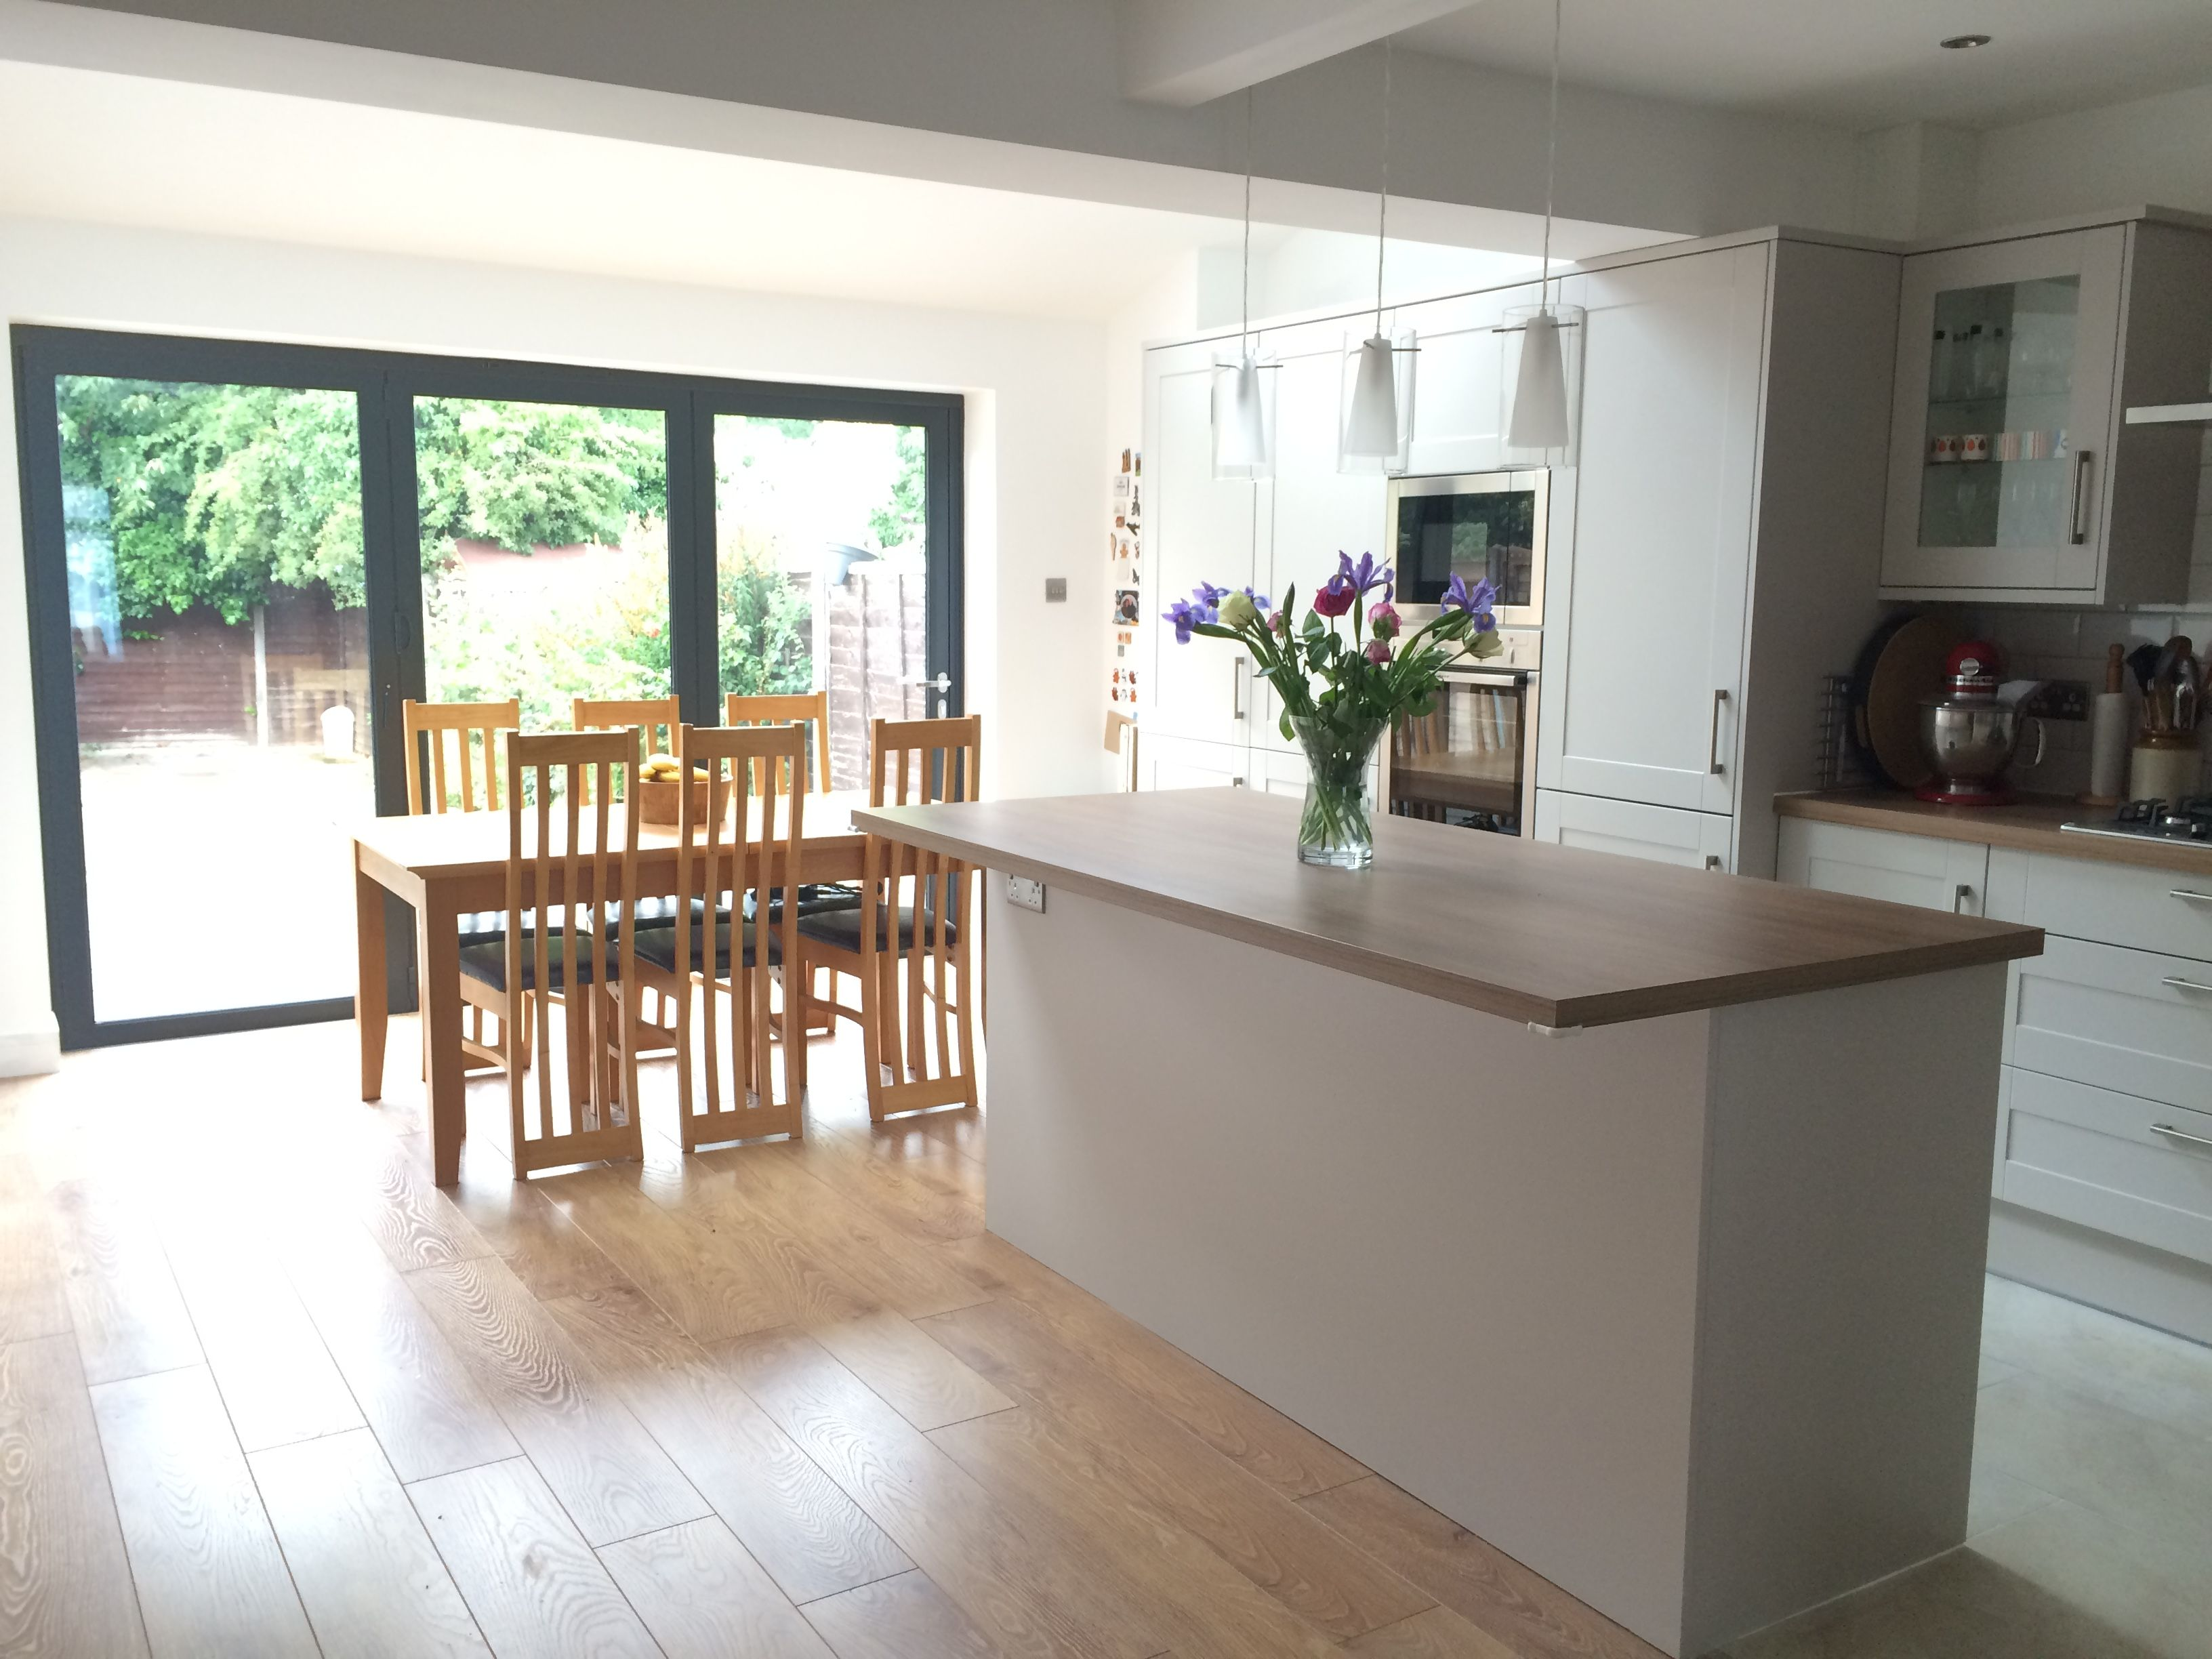 Kitchen extension with bifold doors and vaulted roof with ...